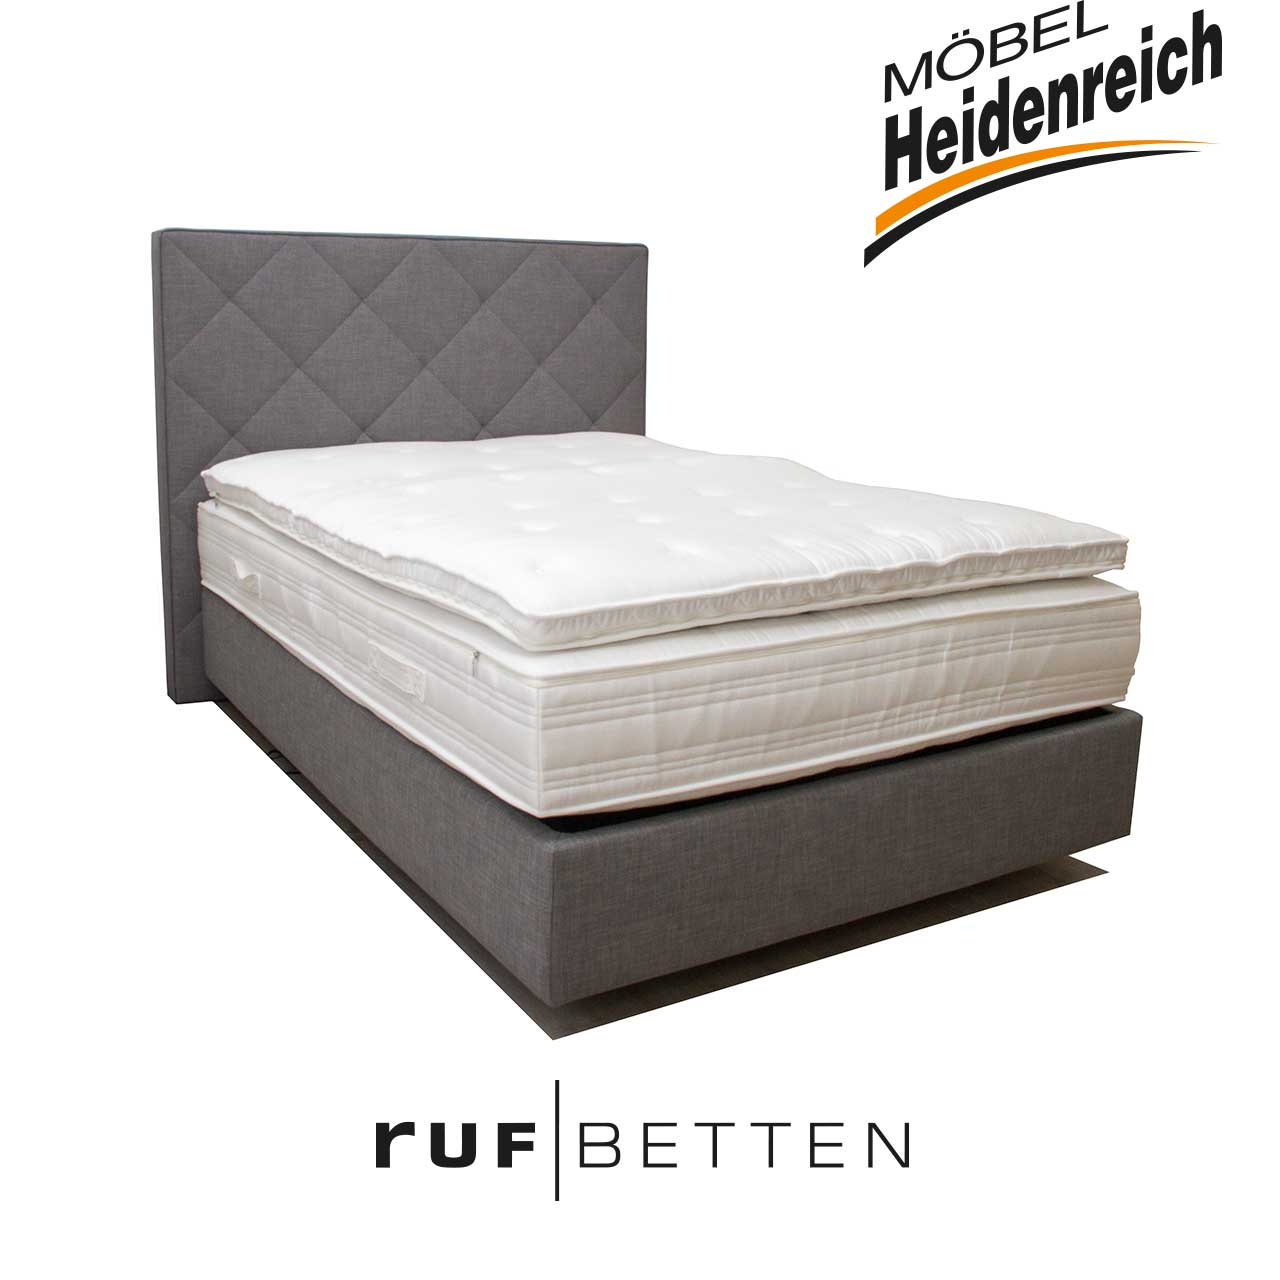 betten sale m bel heidenreich. Black Bedroom Furniture Sets. Home Design Ideas